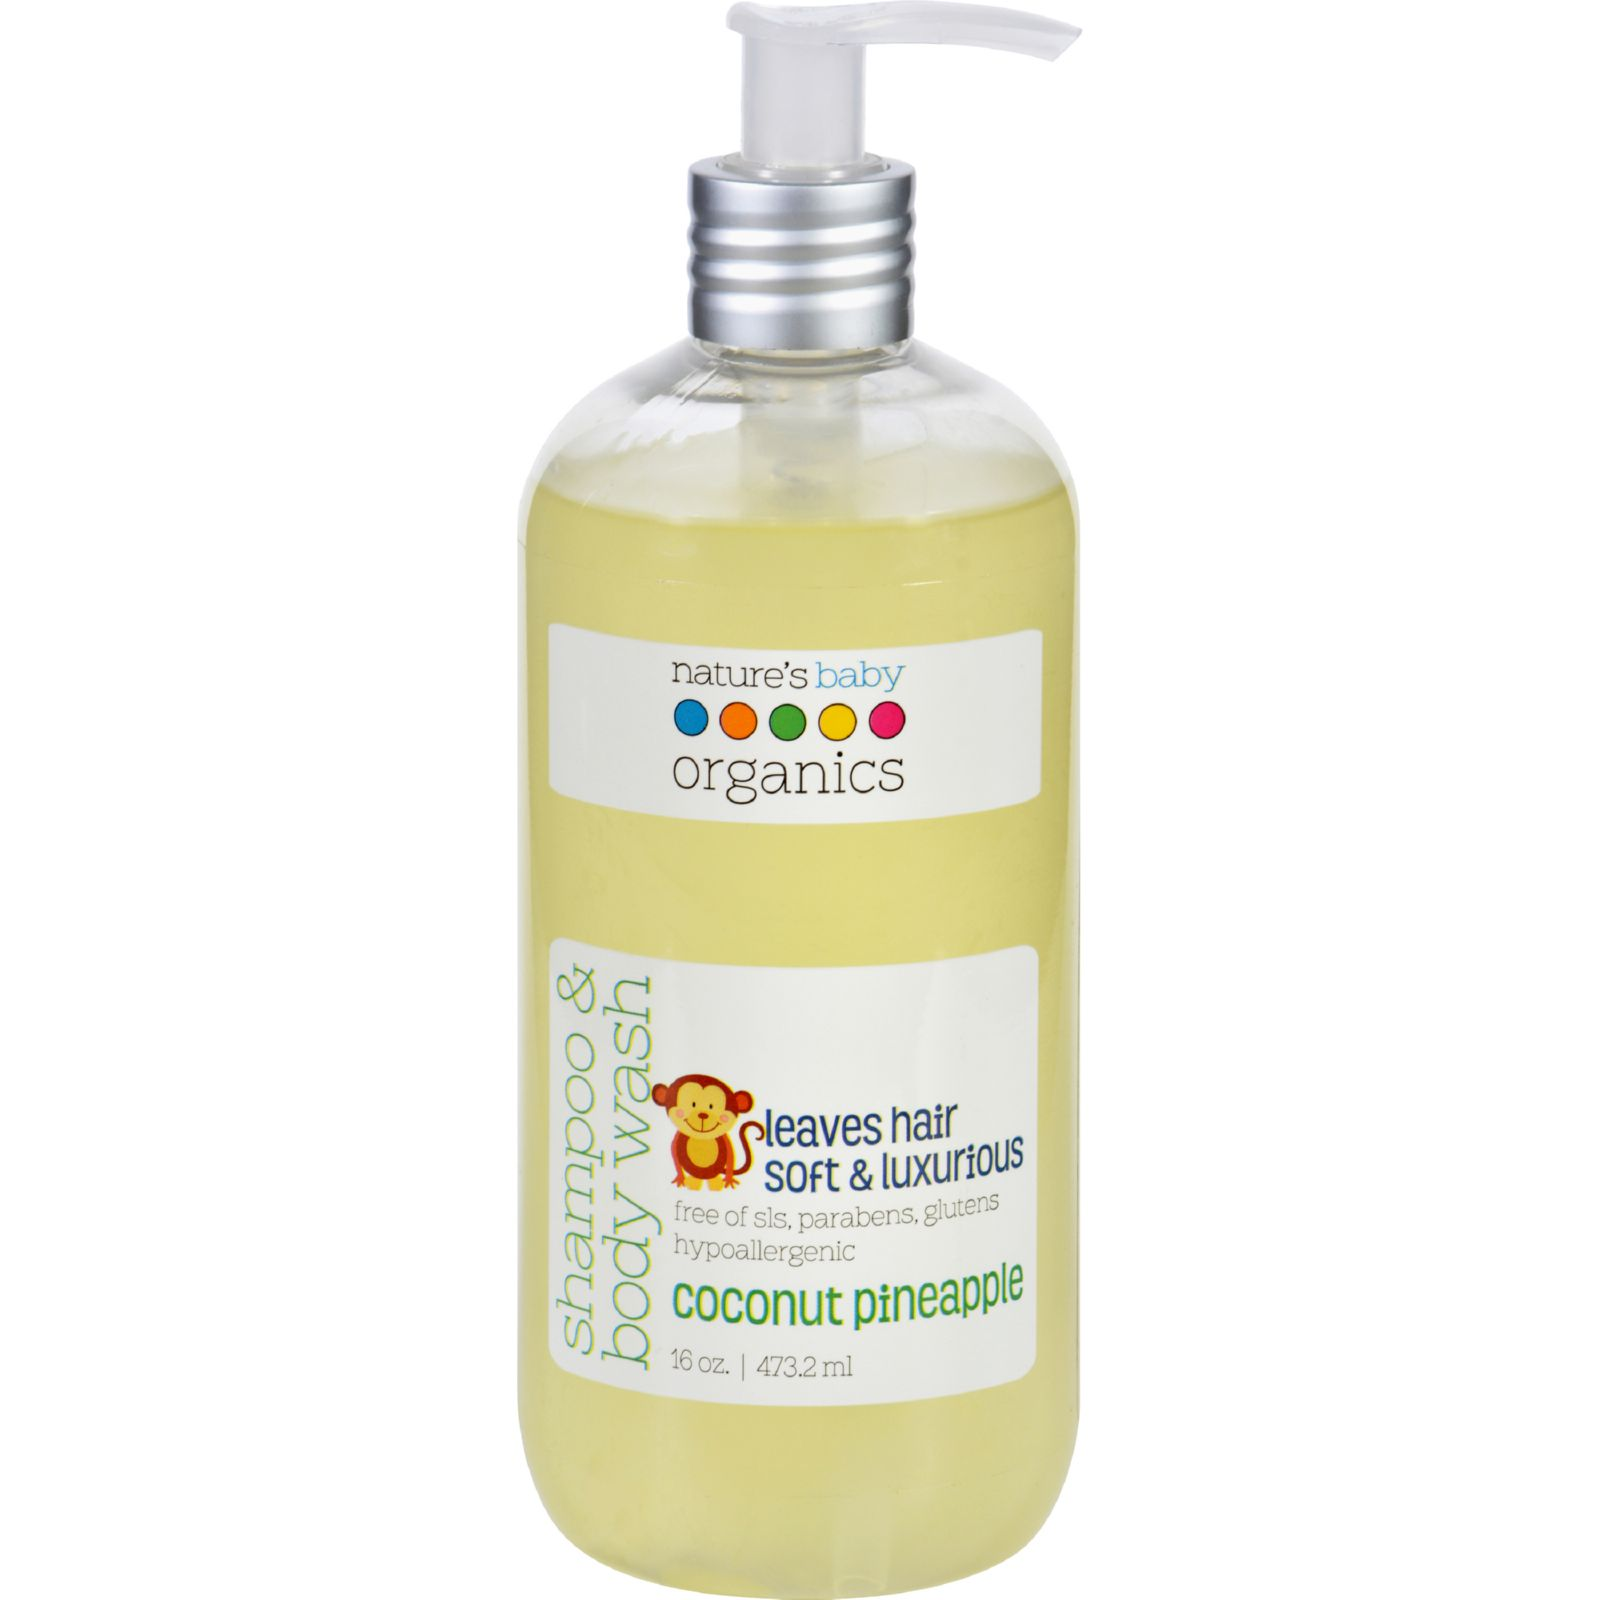 Nature's Baby Organics Shampoo & Body Wash Coconut Pineapple 16 oz by Nature%27s Baby Organics